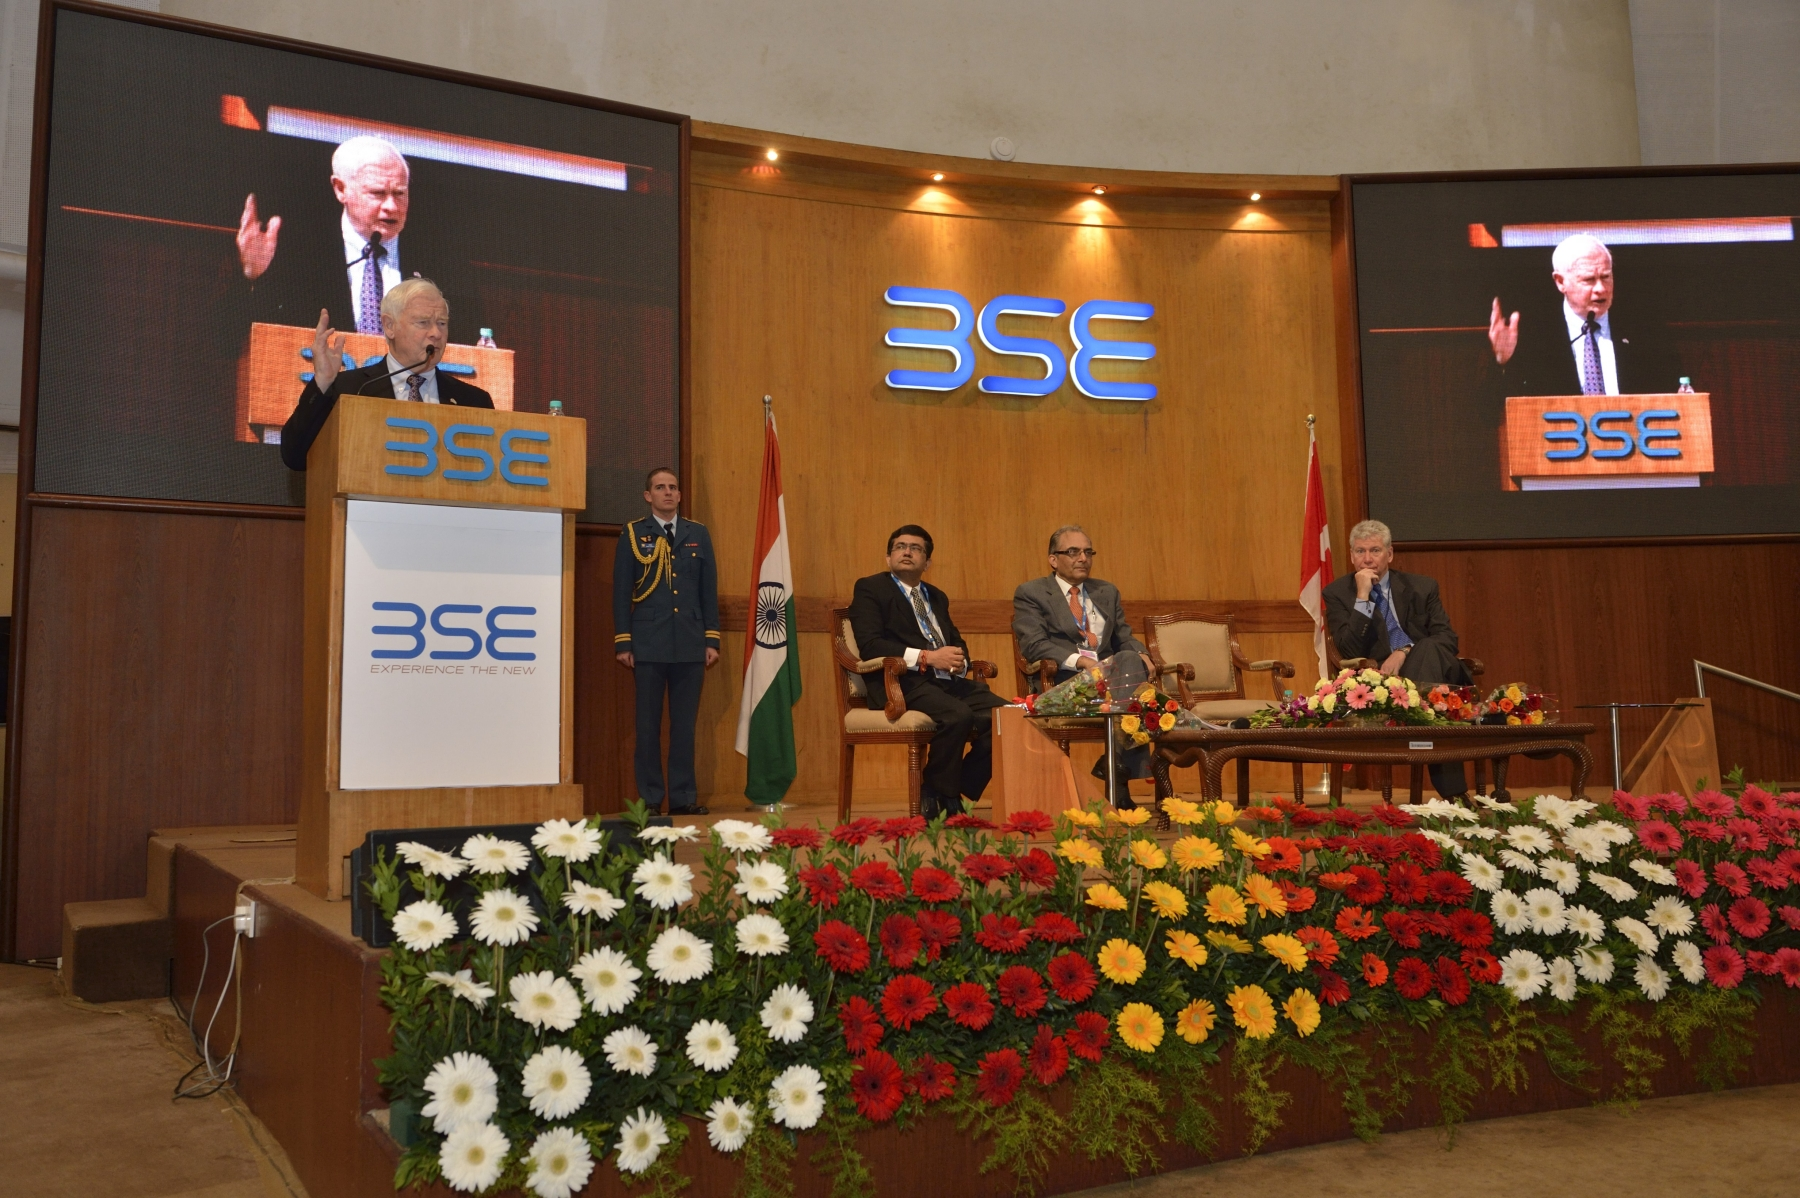 On the occasion of the opening of the stock market at the Bombay Stock Exchange, the Governor General addressed the business community, showcasing Canada as a trade and investment partner of choice for India.